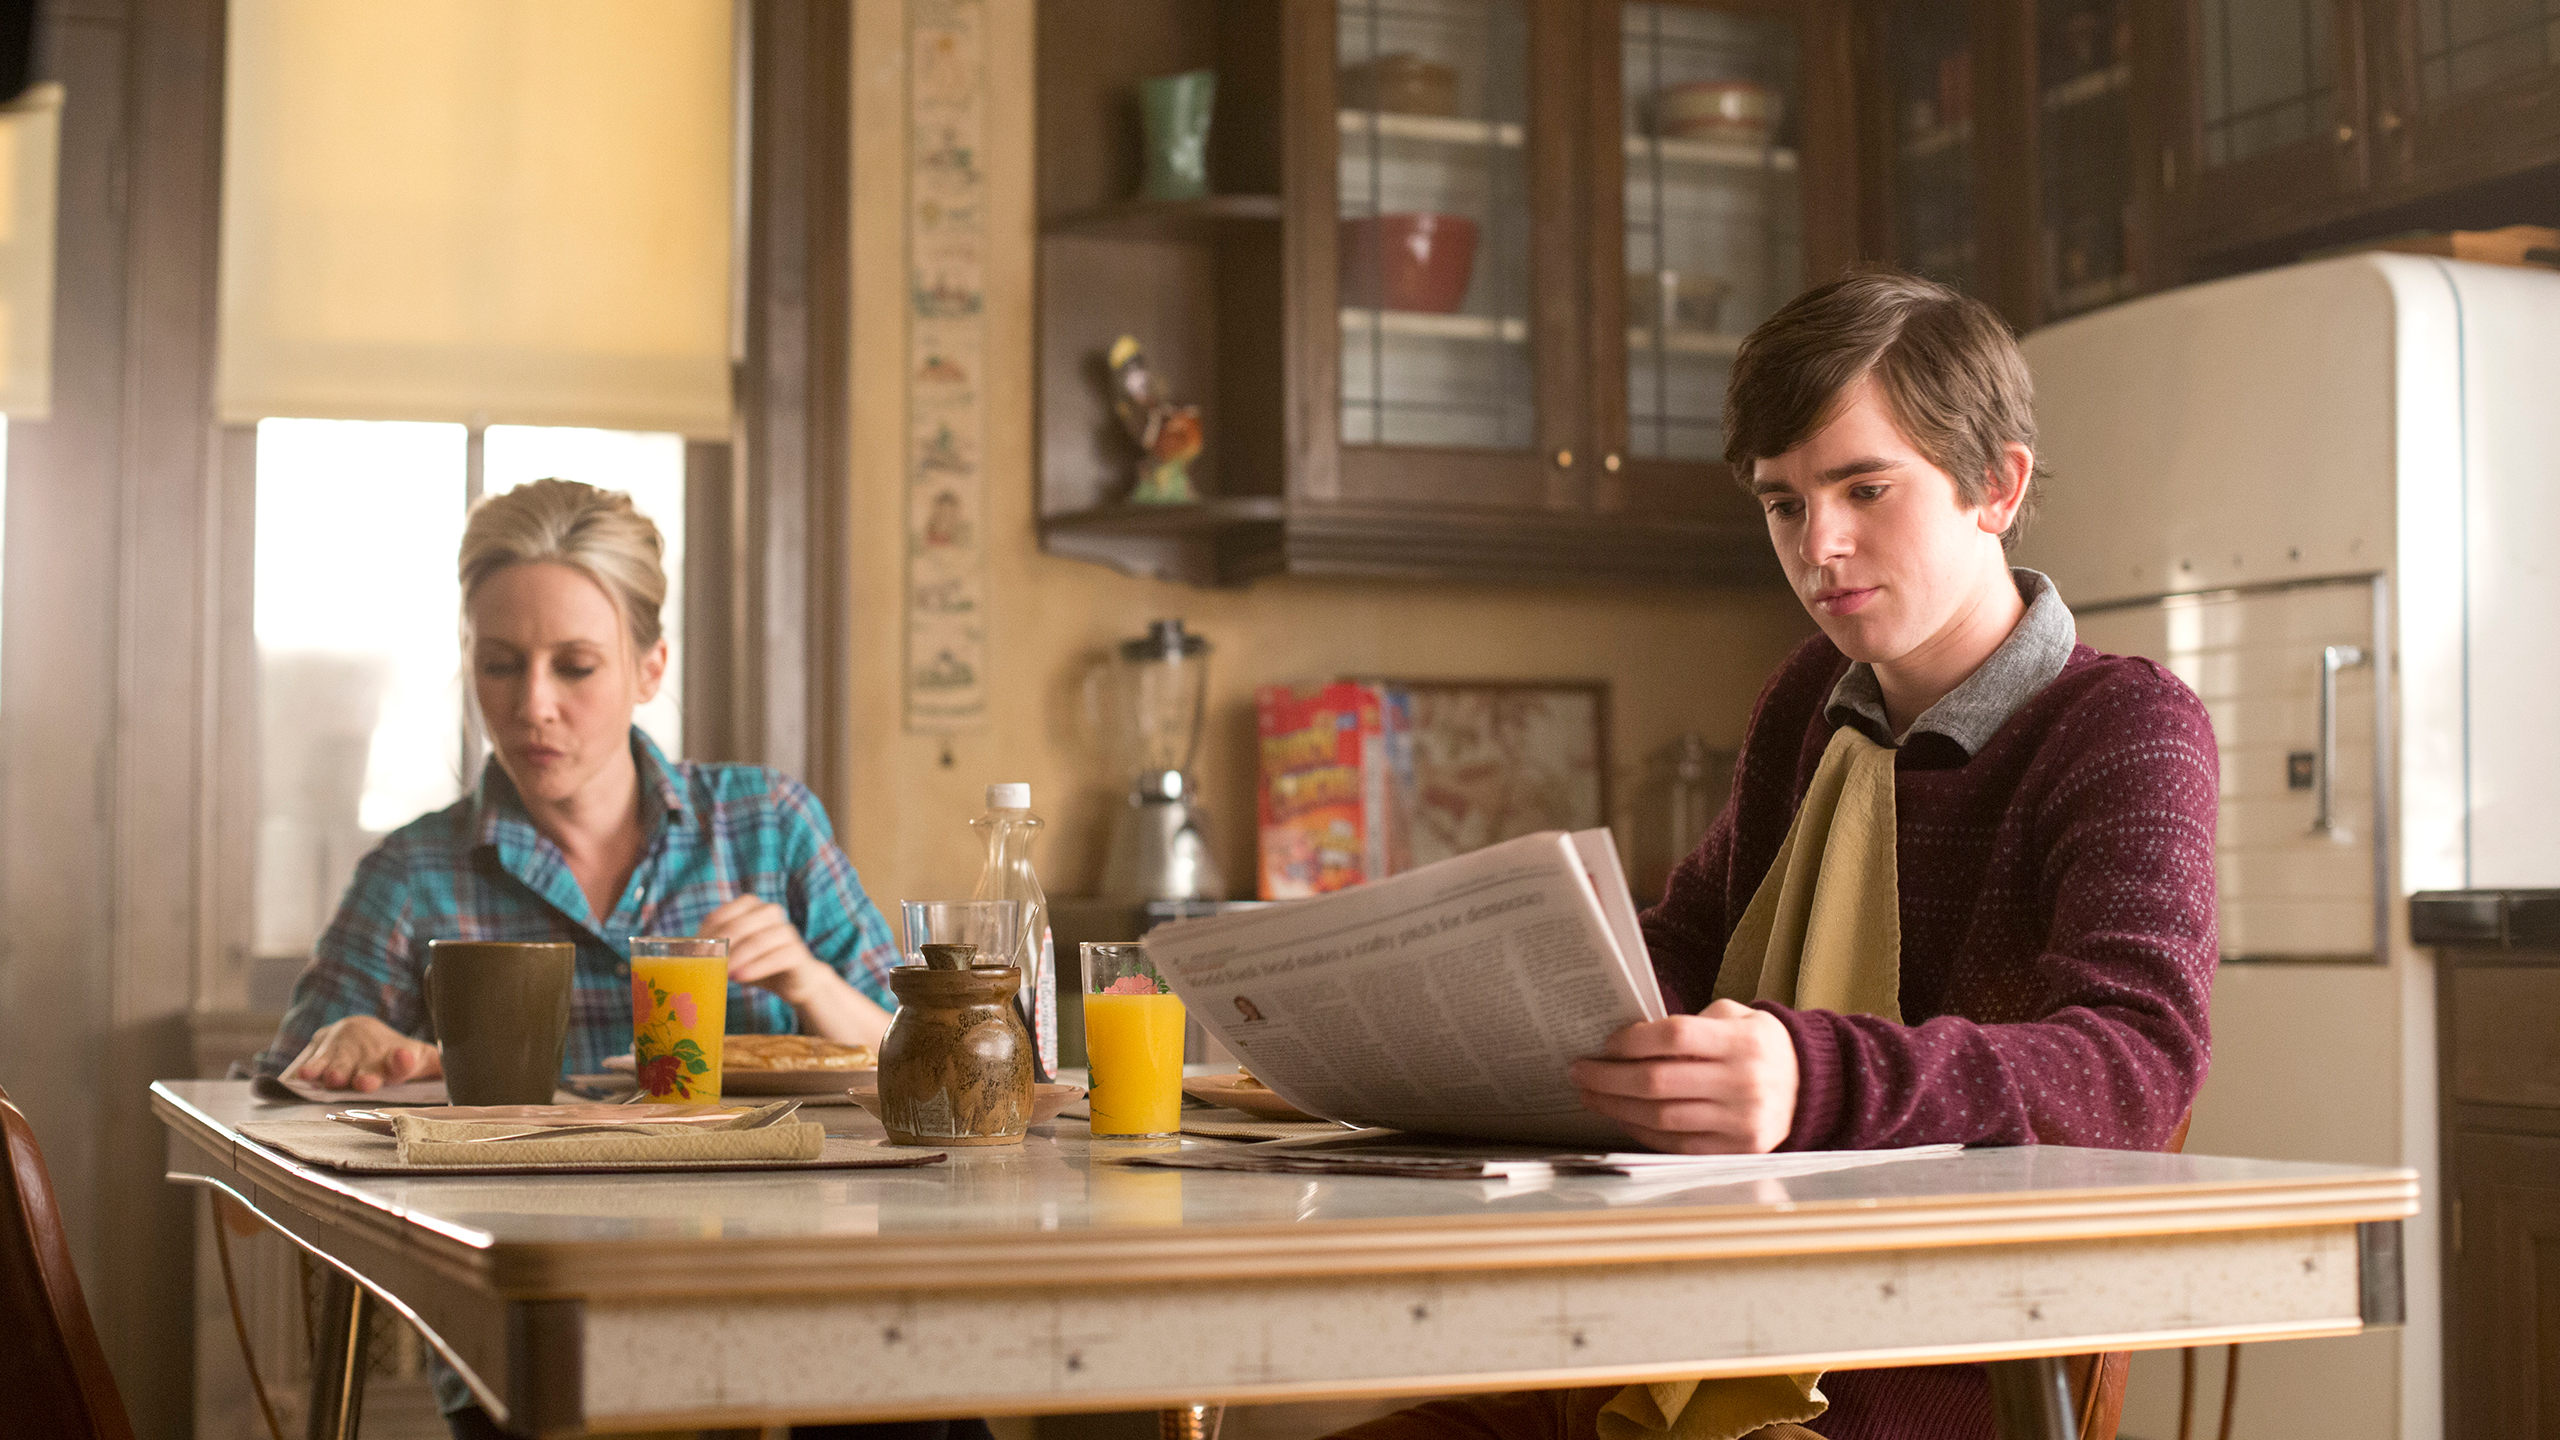 File:02-mr-and-mrs-bates-have-breakfast.jpg